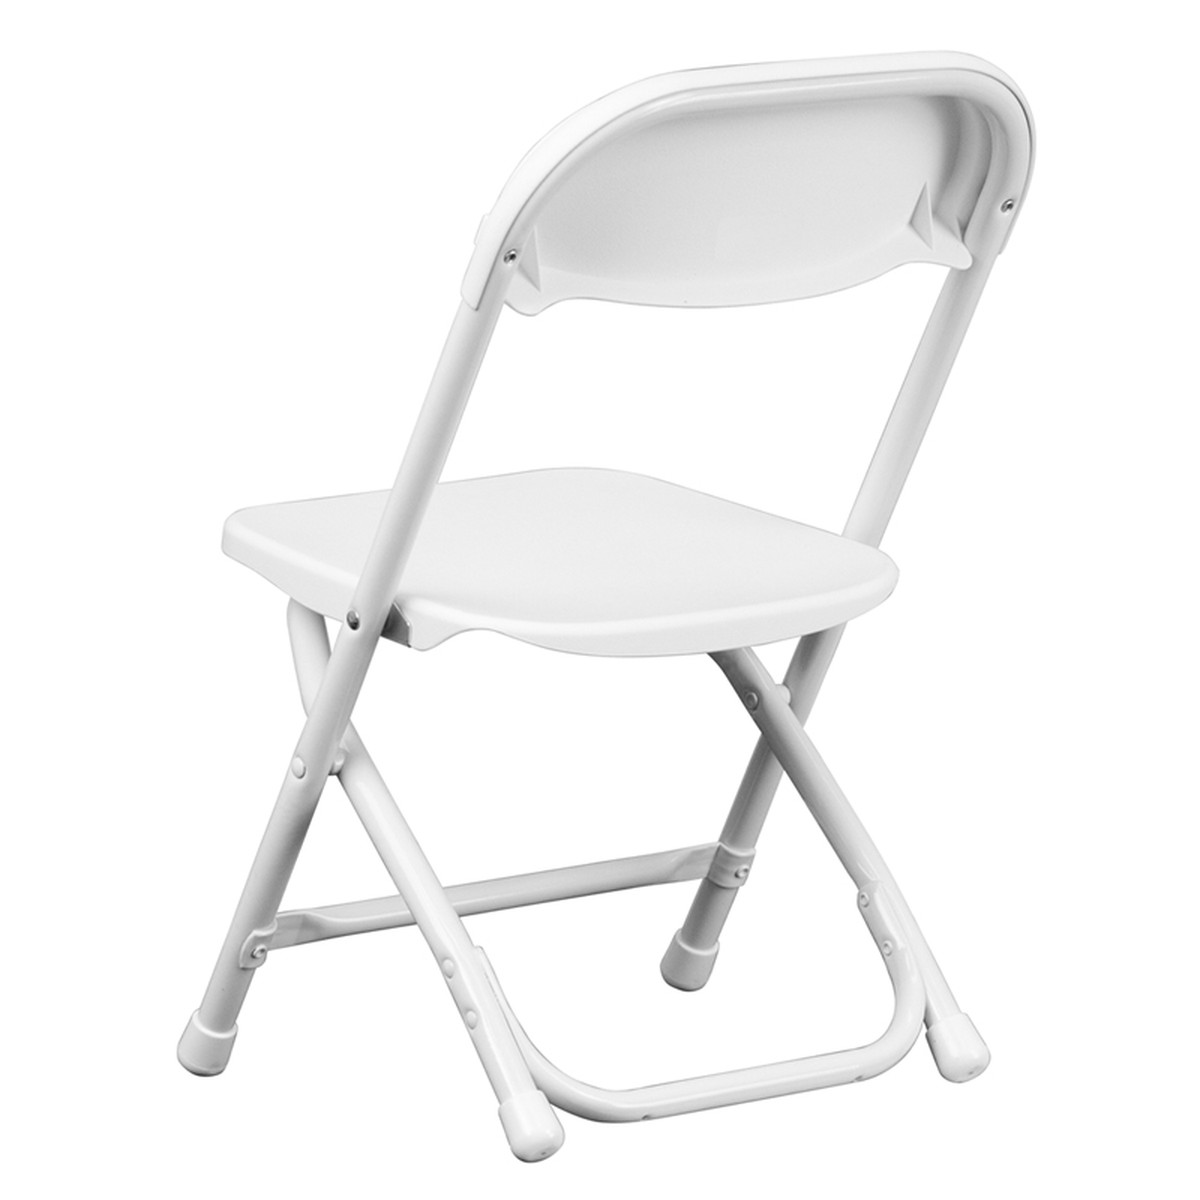 KID PLASTIC FOLDING CHAIR